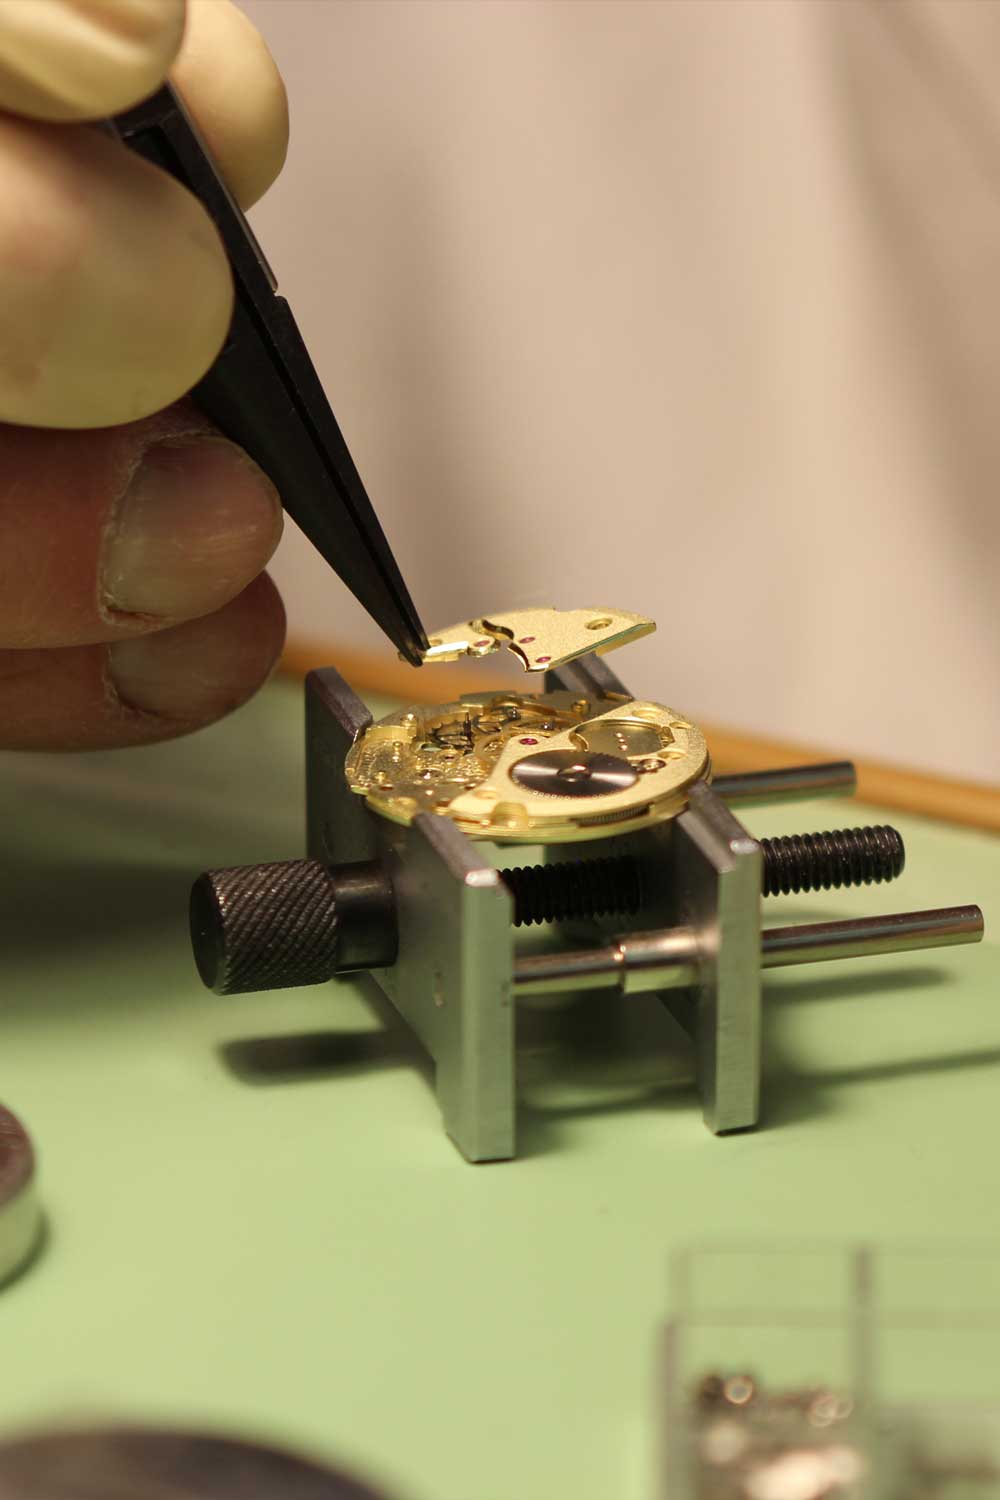 Michiel Holthinrichs gingerly placing a finished bridge onto a movement in the midst of assembly